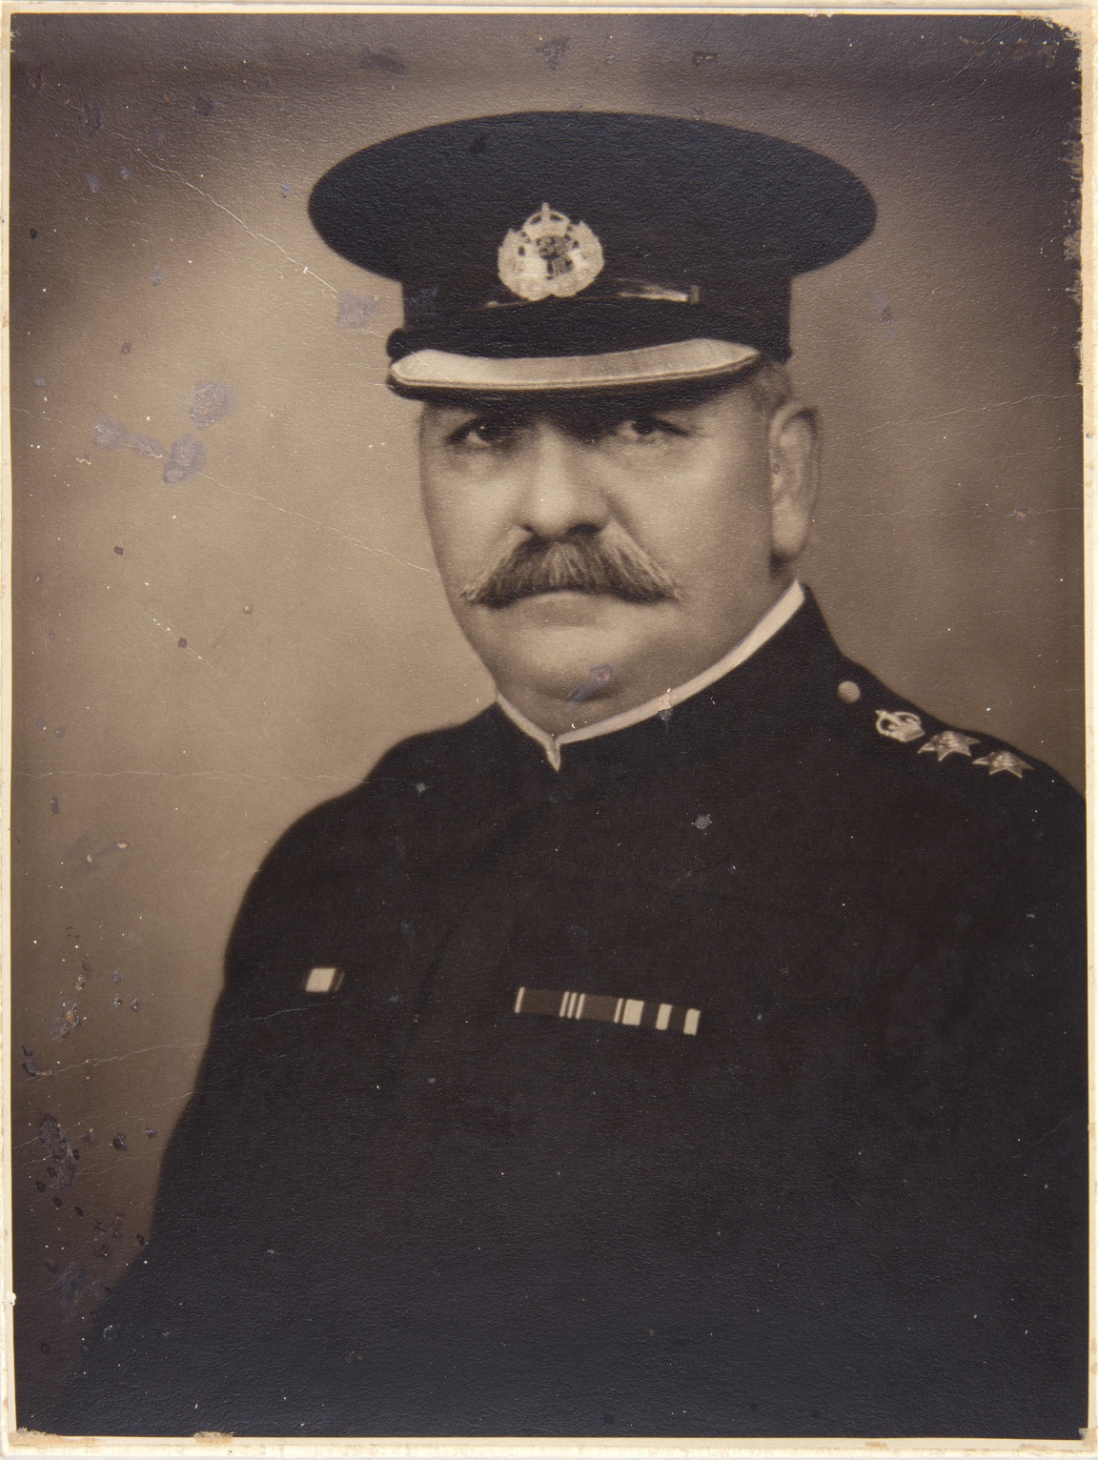 Moustached man in police uniform and cap.